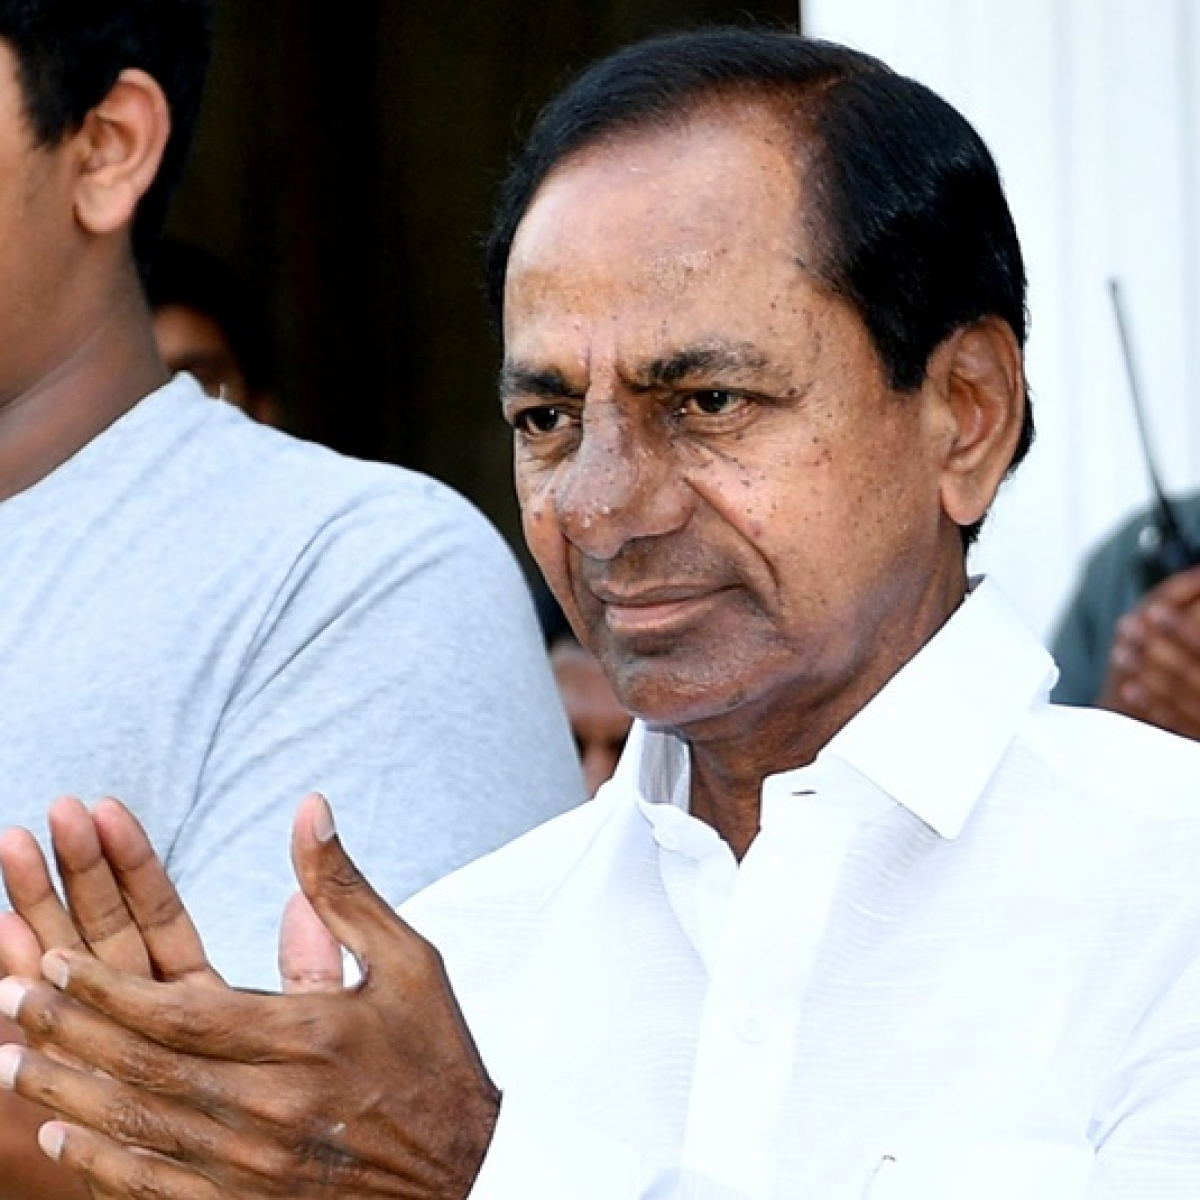 Follow lockdown, don't force us to shoot at sight: Telangana CM K Chandrasekhar Rao